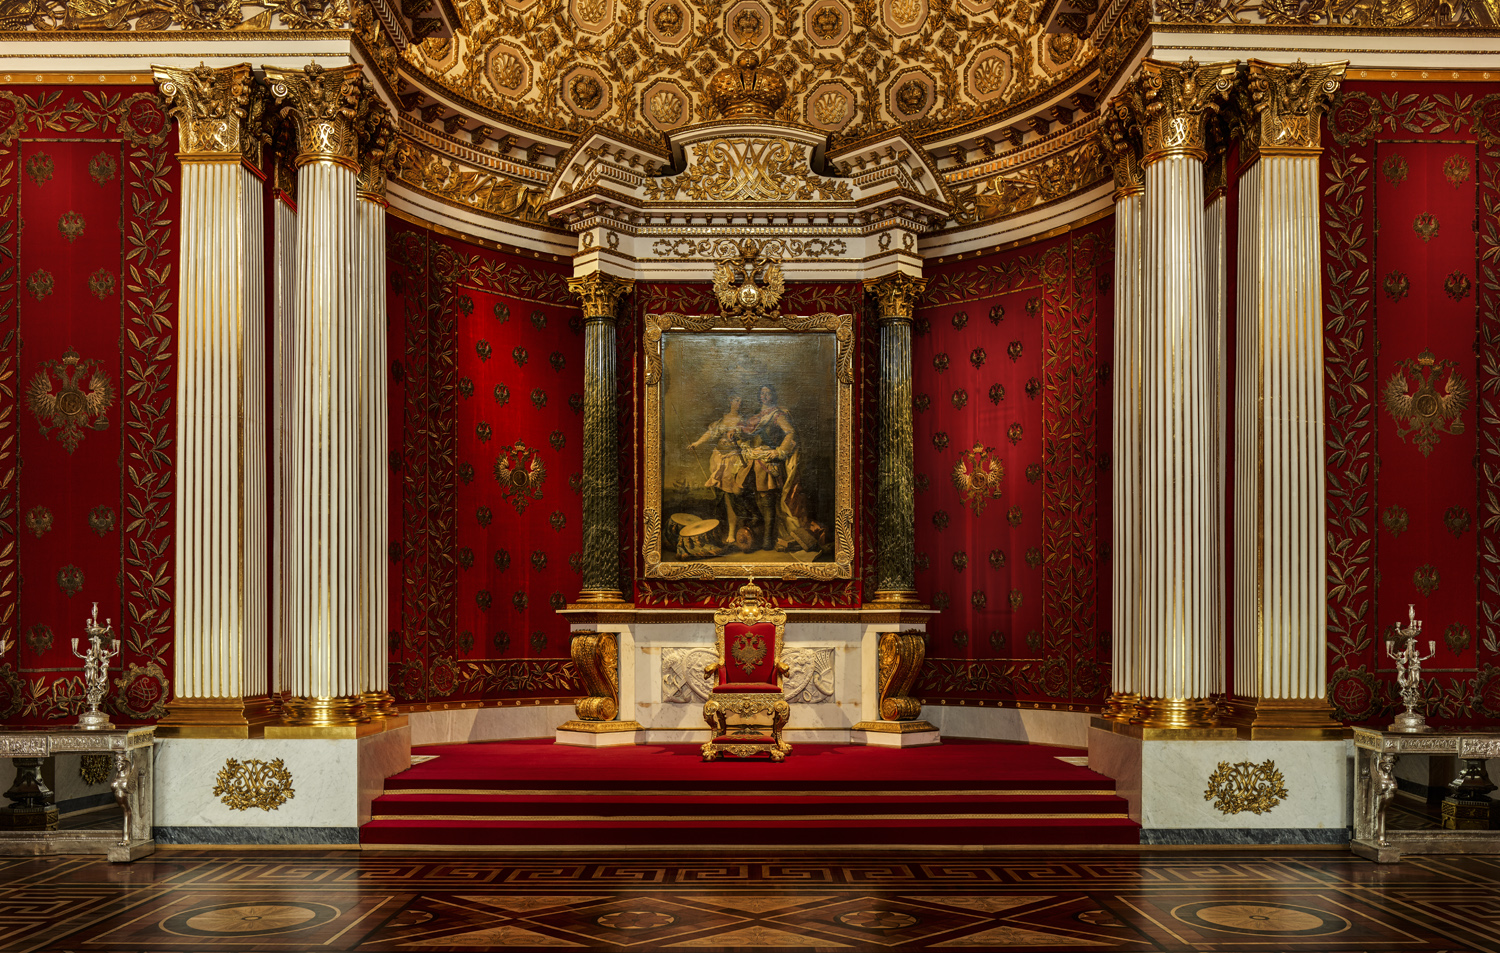 The Small Throne Room - Hermitage / St. Petersburg - Russian Federation - 2018